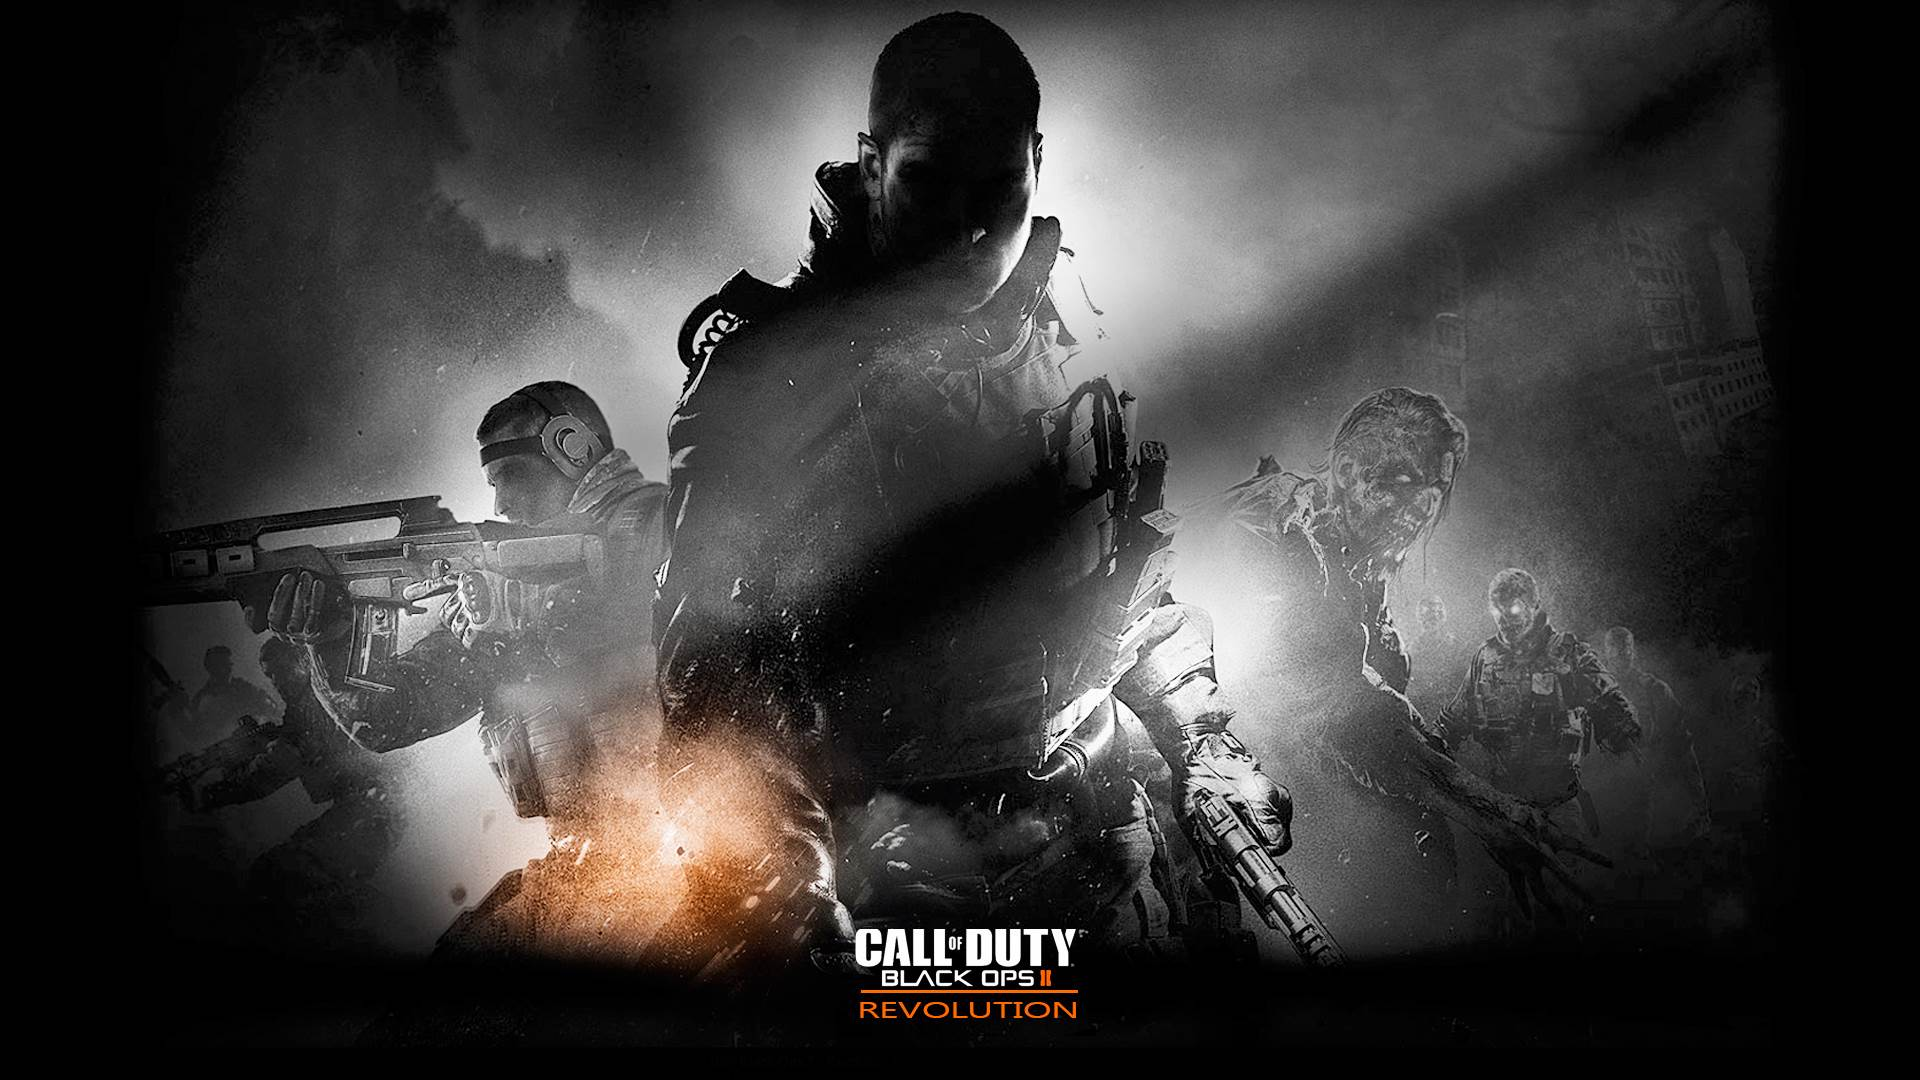 Call-of-Duty-Black-Ops-Zombies-Speed-Art-YouTube-1920%C3%971080-Call-Of-Duty-Bla-wallpaper-wp3403635